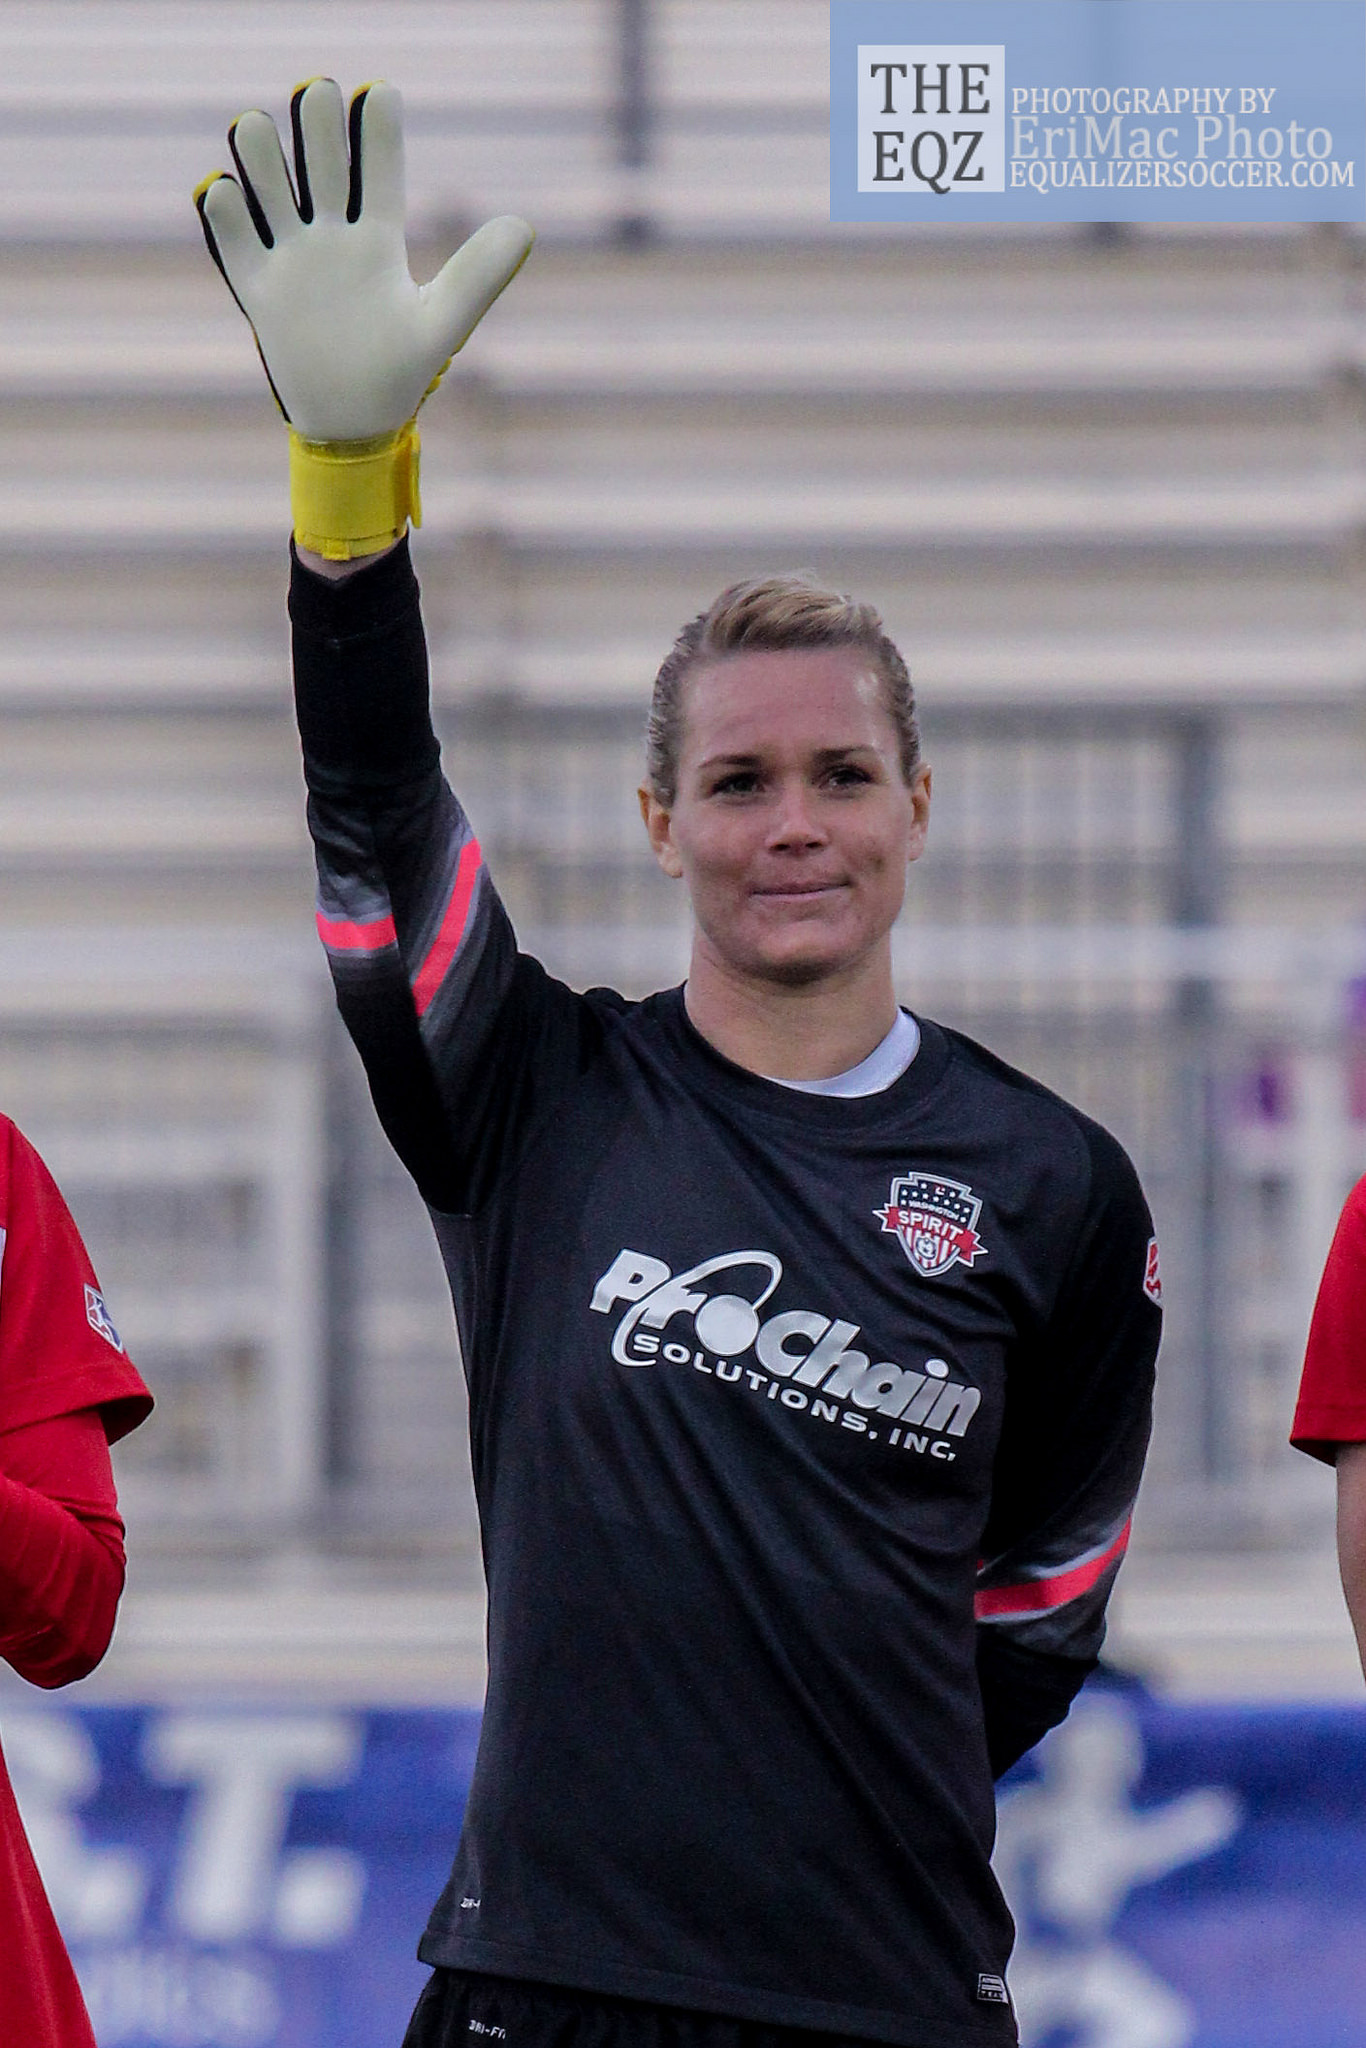 Ashlyn Harris has won her second CONCACAF Goalkeeper of the Year honor.   (Photo Copyright Erica McCaulley for The Equalizer)